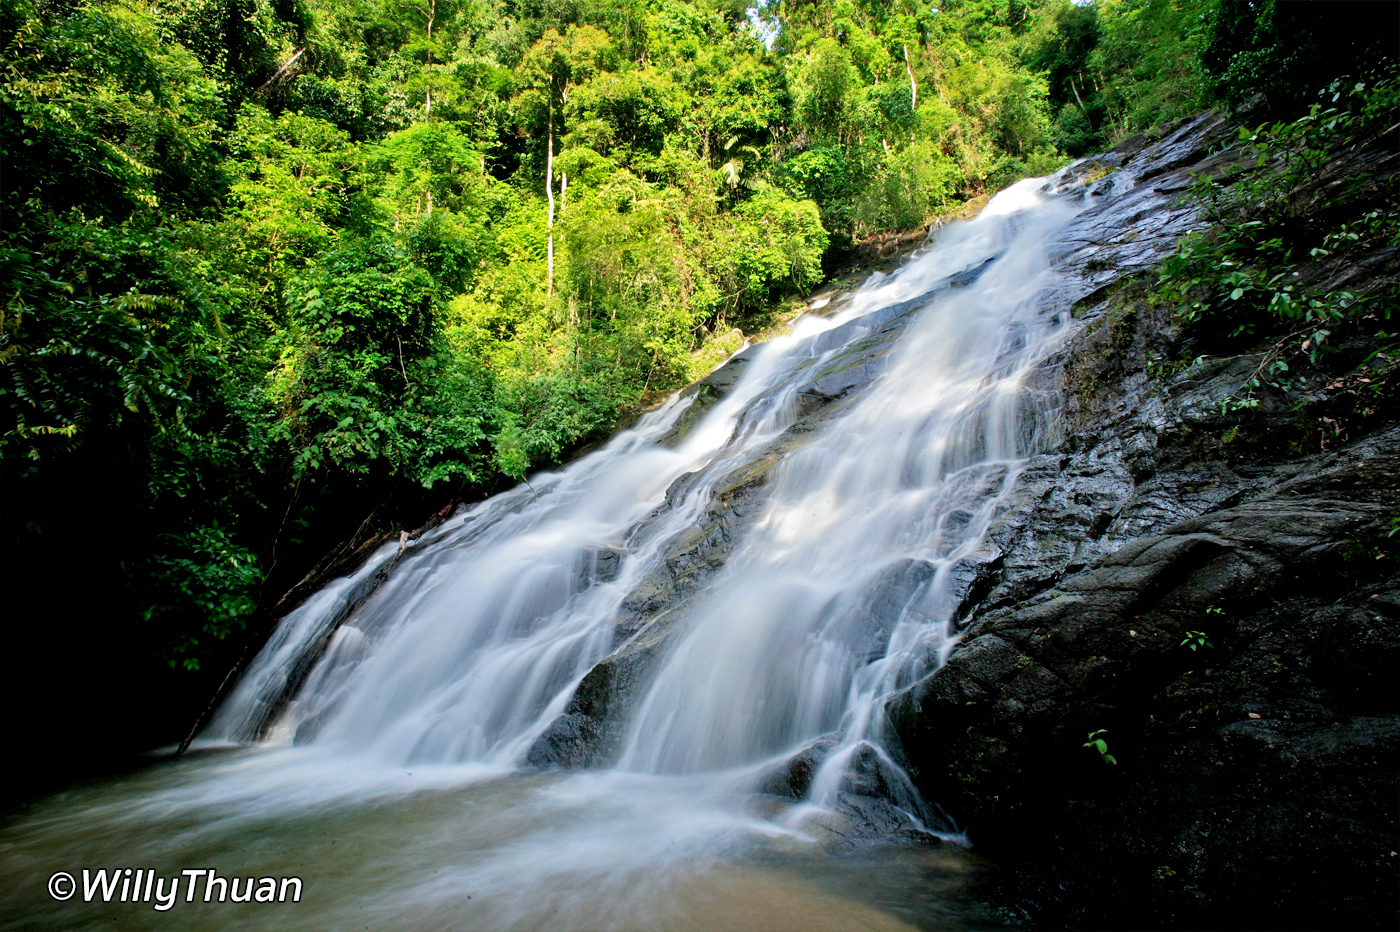 Where To Find The Waterfalls In Phuket